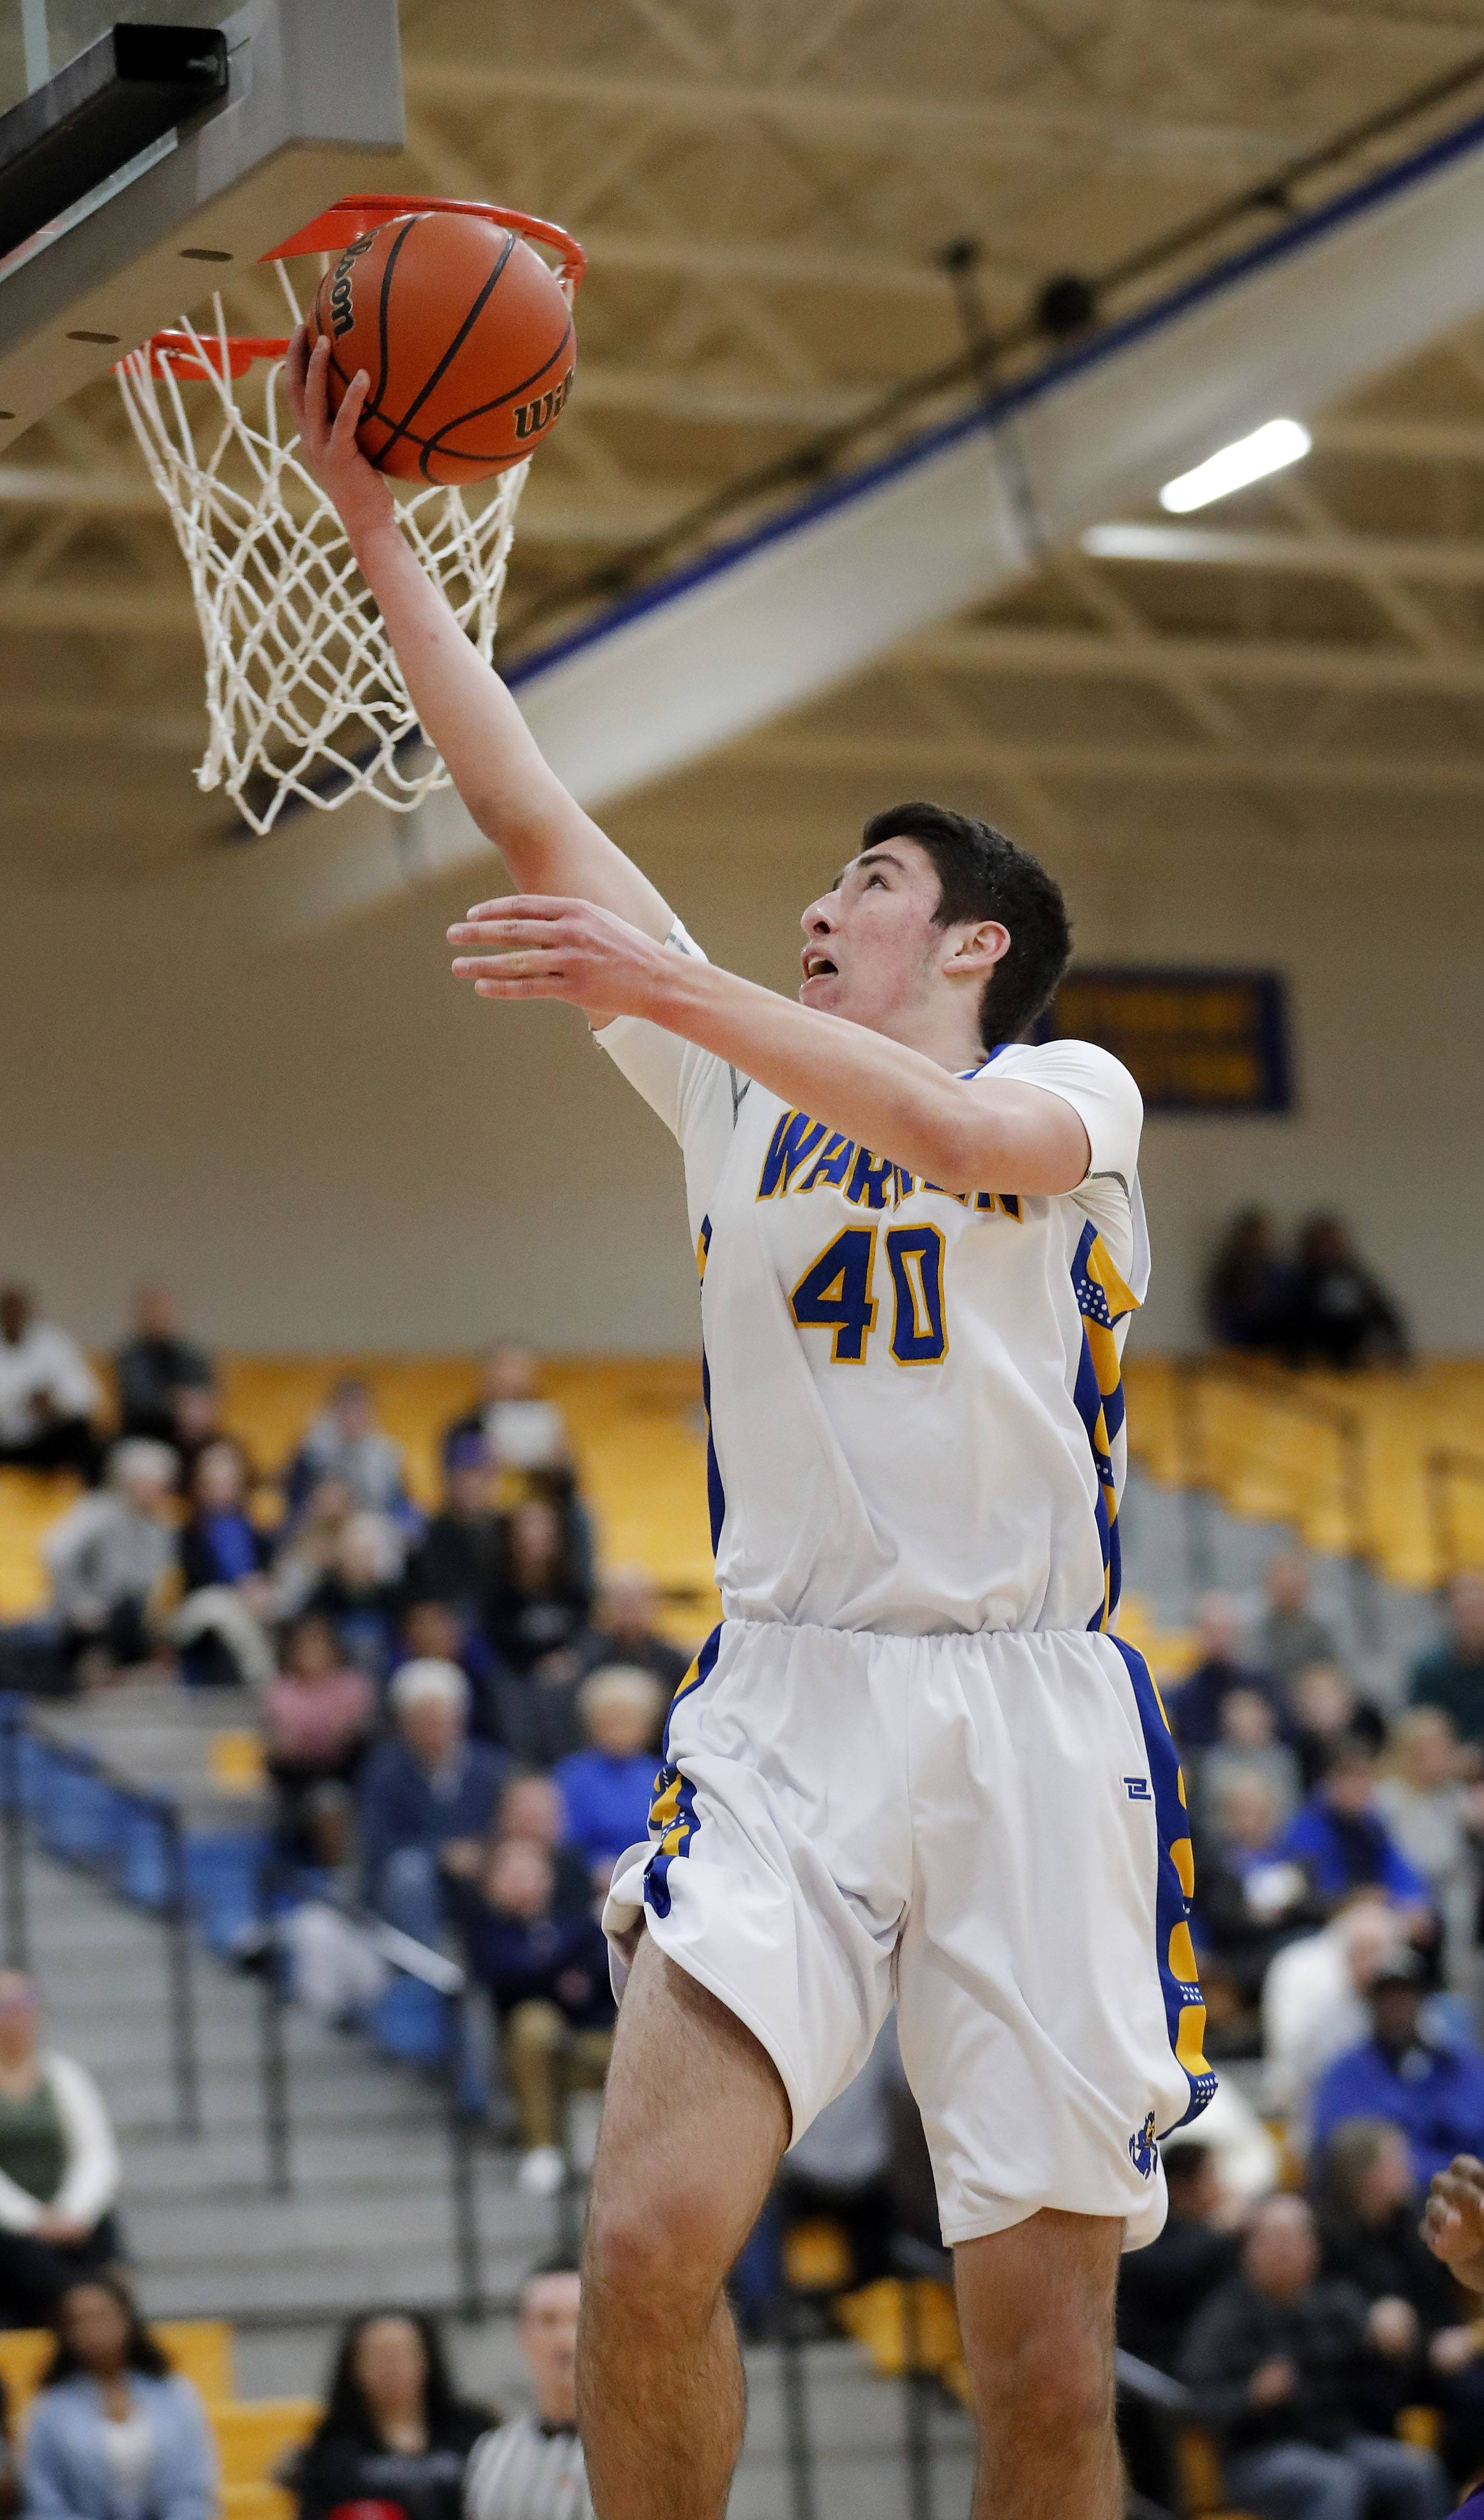 Warren's Adnan Sarancic drives for a layup against Waukegan on Wednesday night in Gurnee.